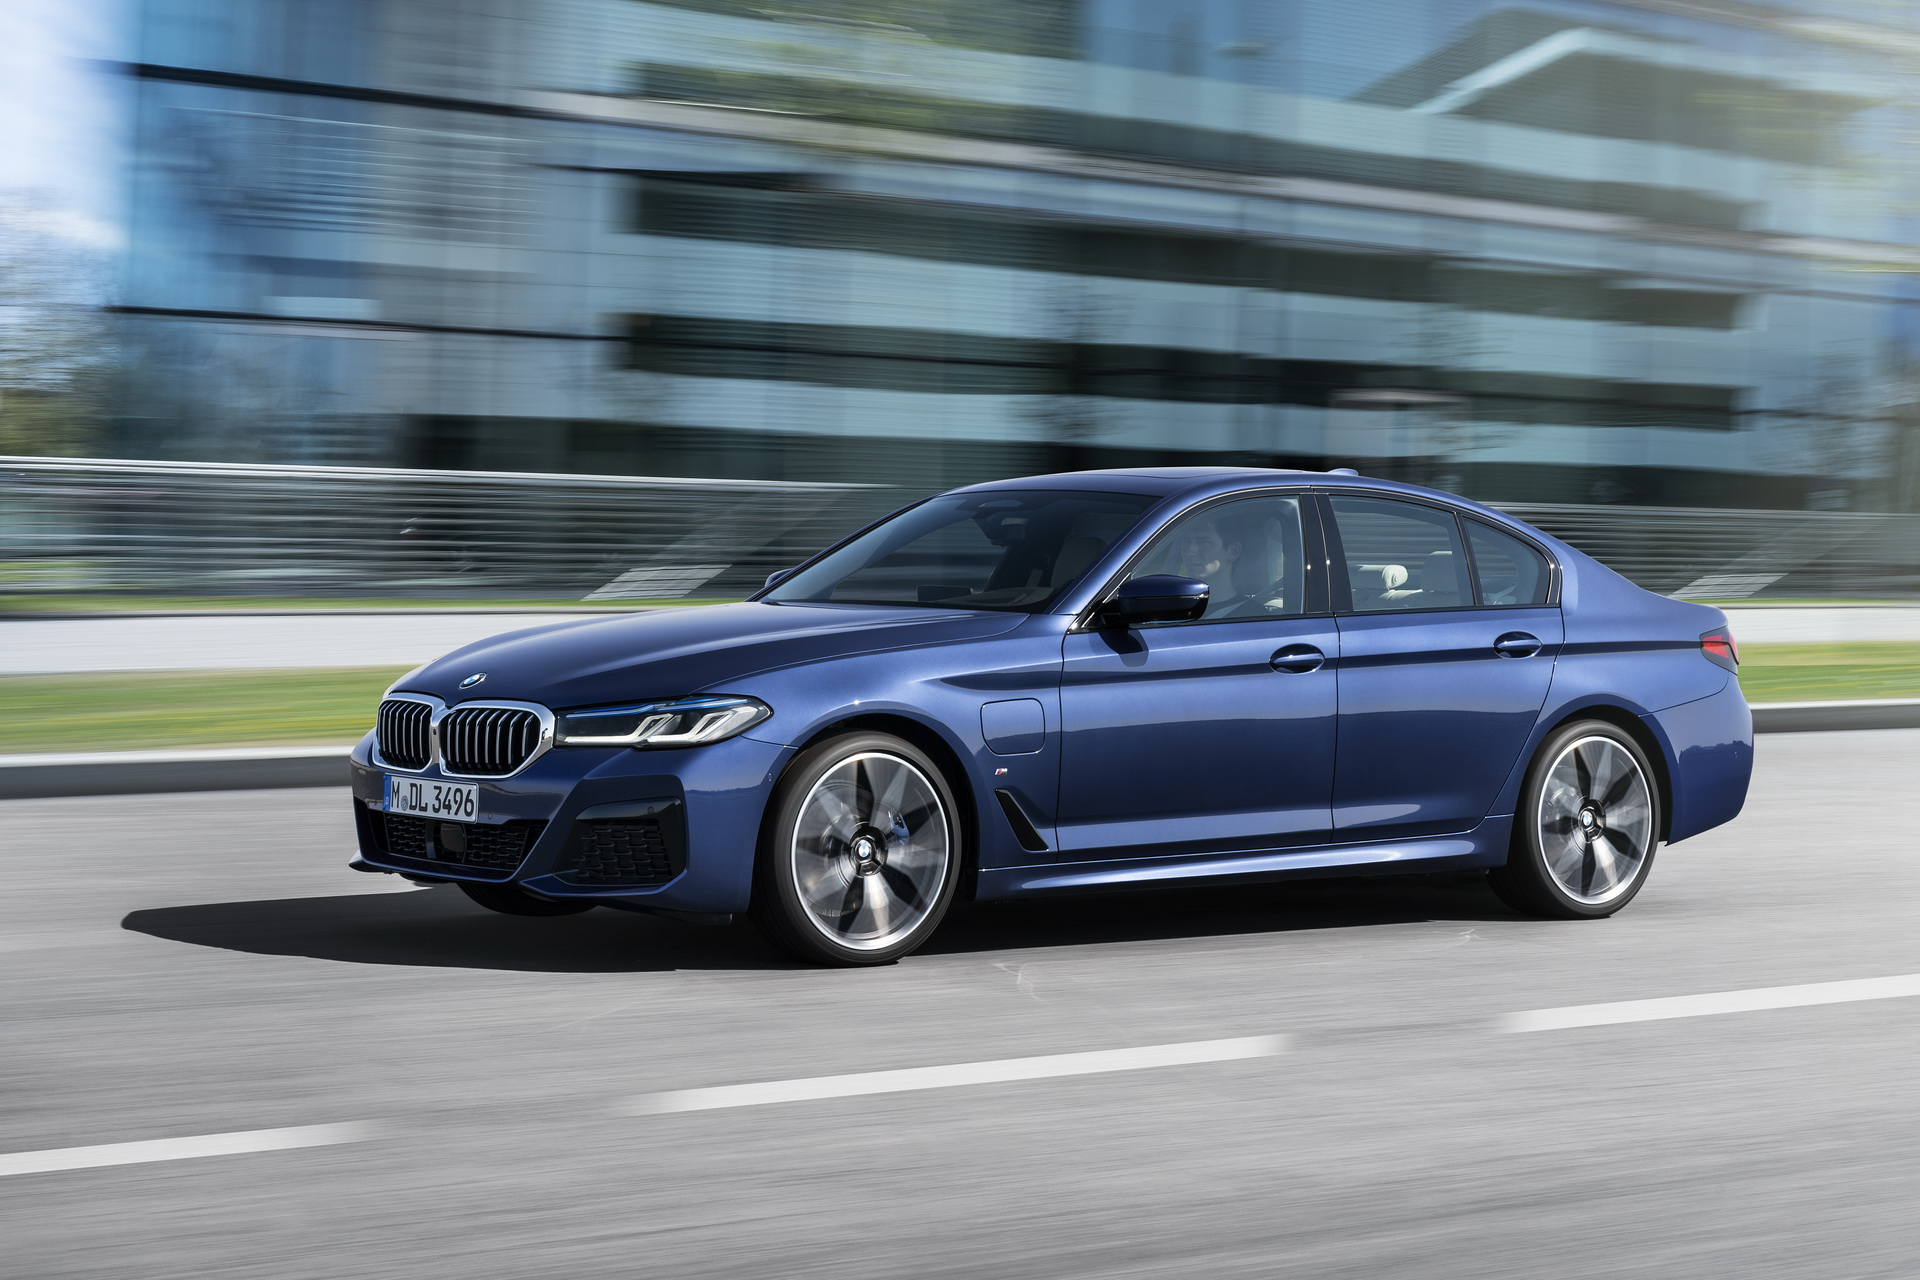 2021-bmw-5-series-sedan-touring-12-1.jpg